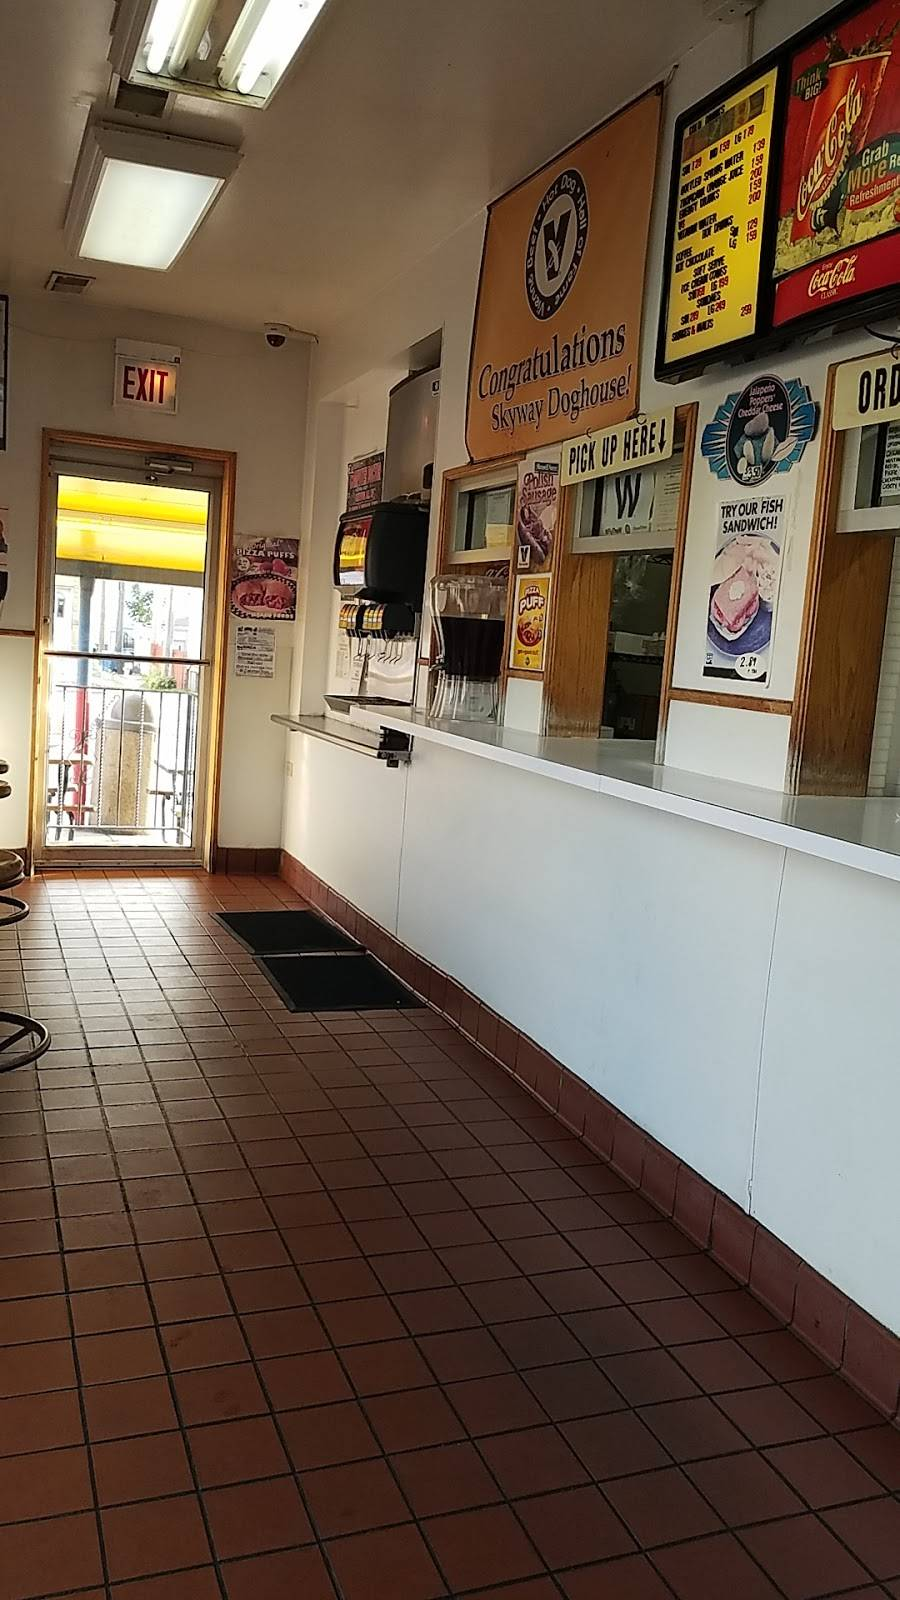 Skyway Doghouse | restaurant | 9480 S Ewing Ave, Chicago, IL 60617, USA | 7737312000 OR +1 773-731-2000